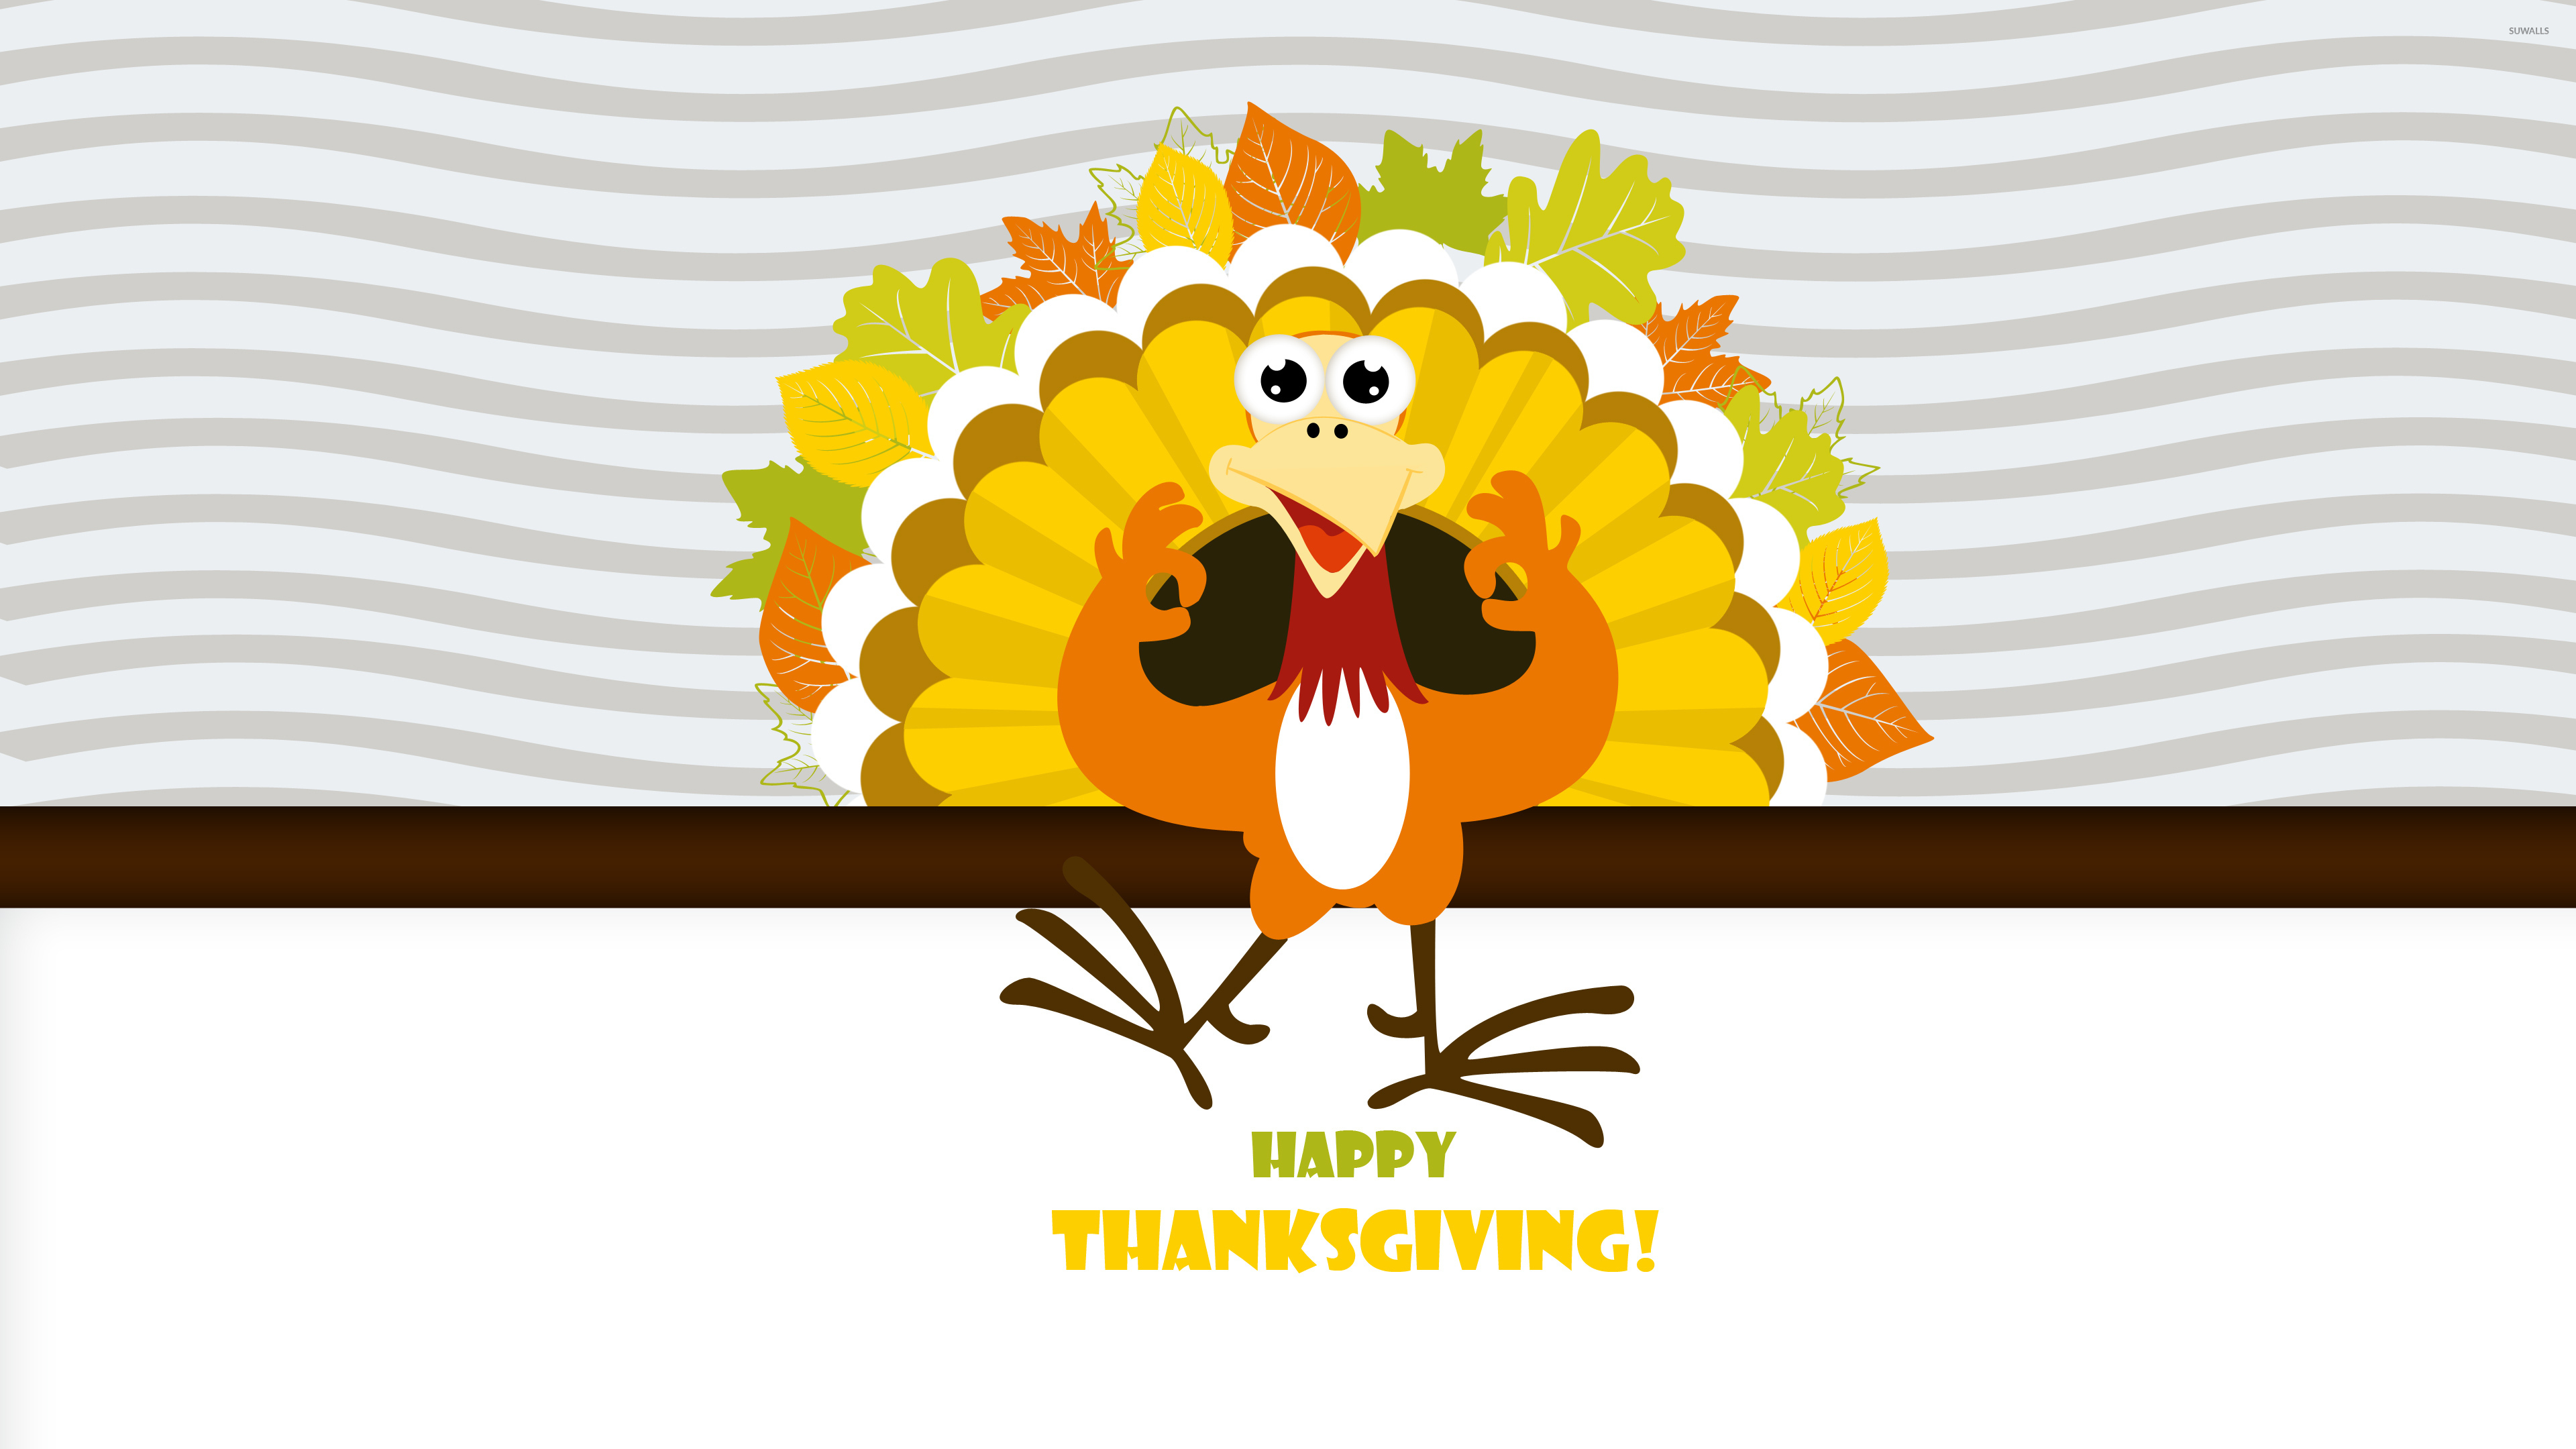 Happy thanksgiving turkey wallpaper holiday wallpapers 50081